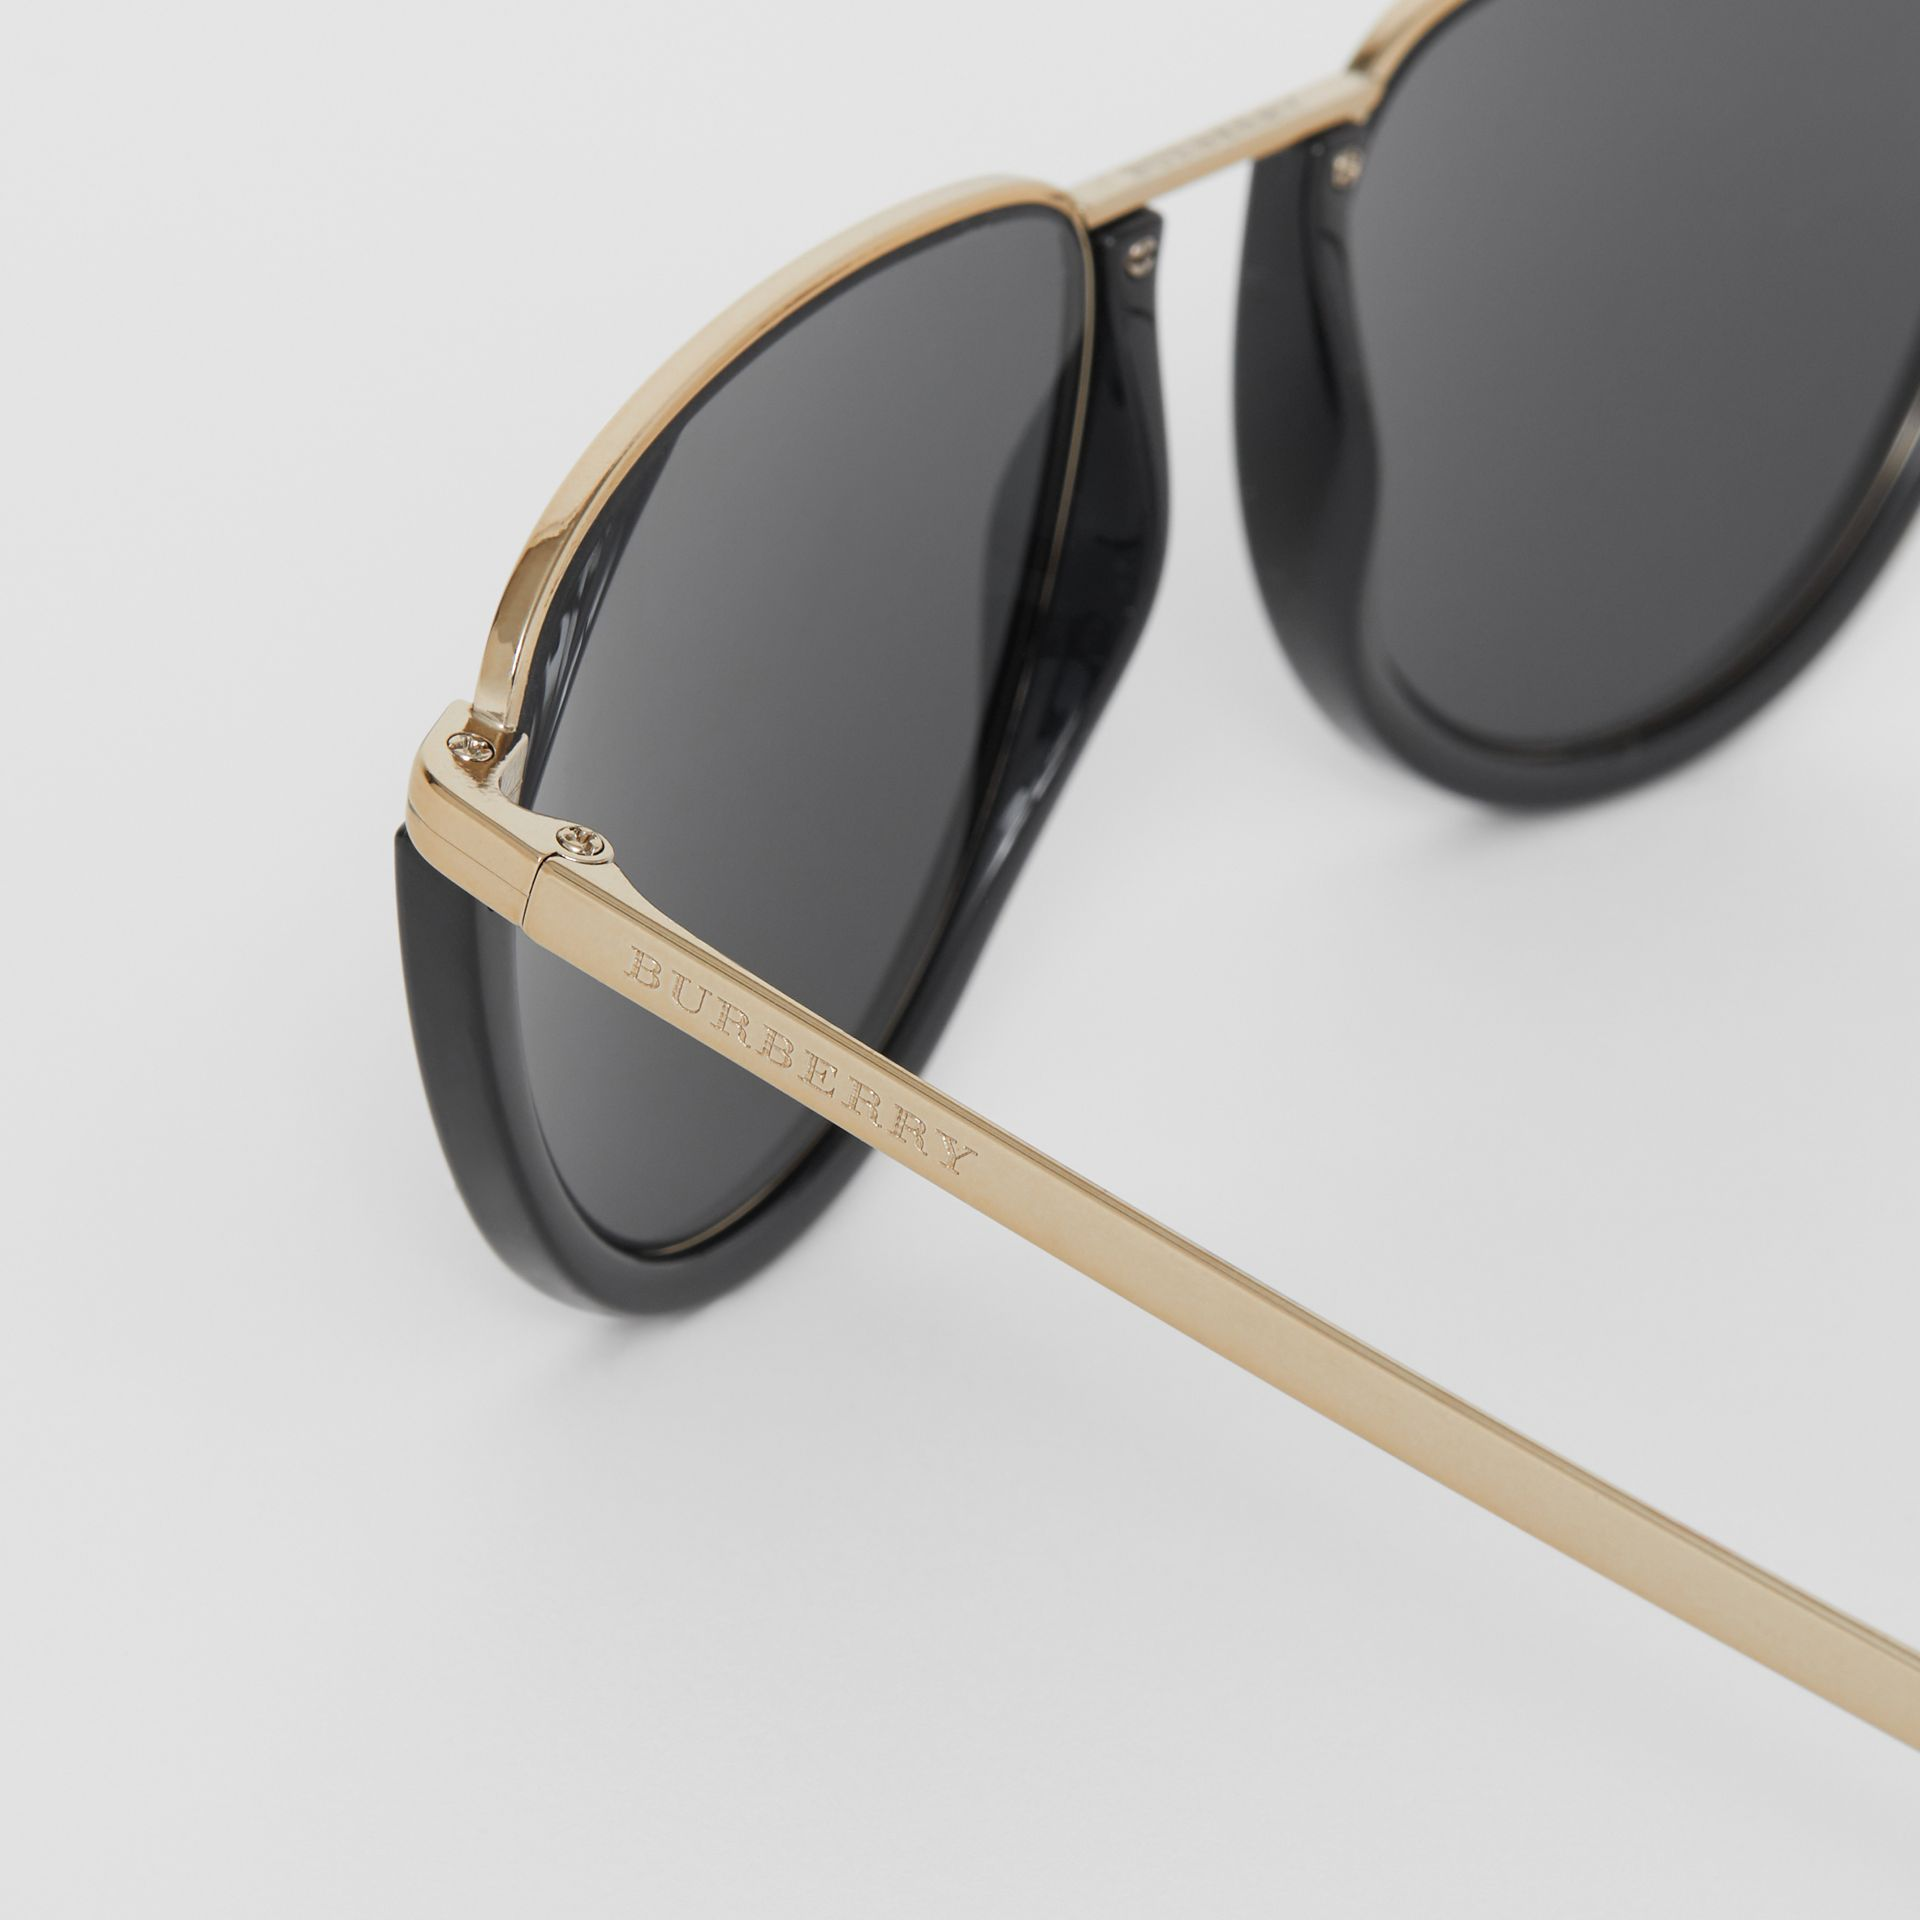 Half Moon Pilot Round Frame Sunglasses in Black - Women | Burberry United States - gallery image 1